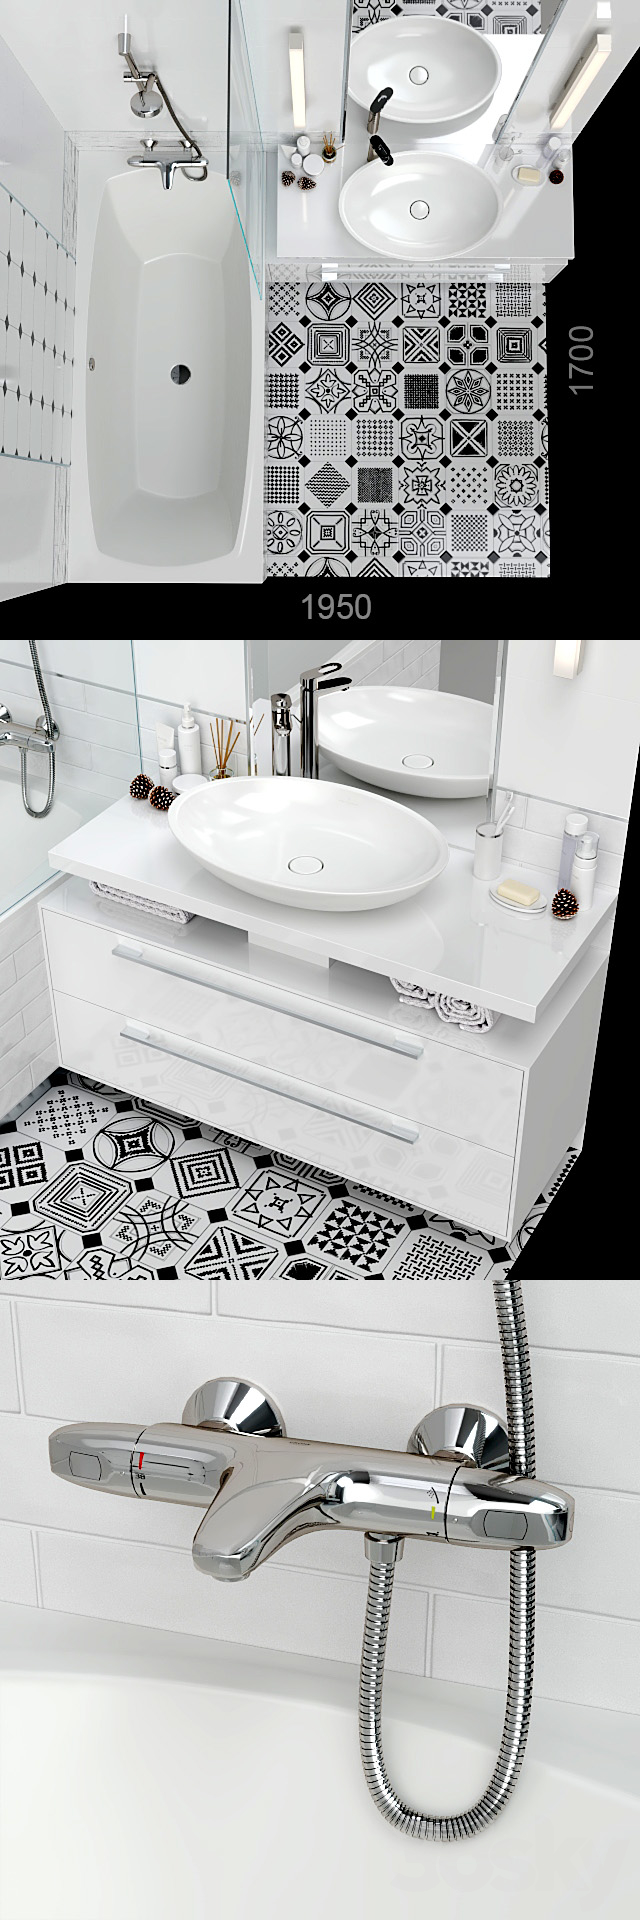 Furniture and decor for a small bathroom.